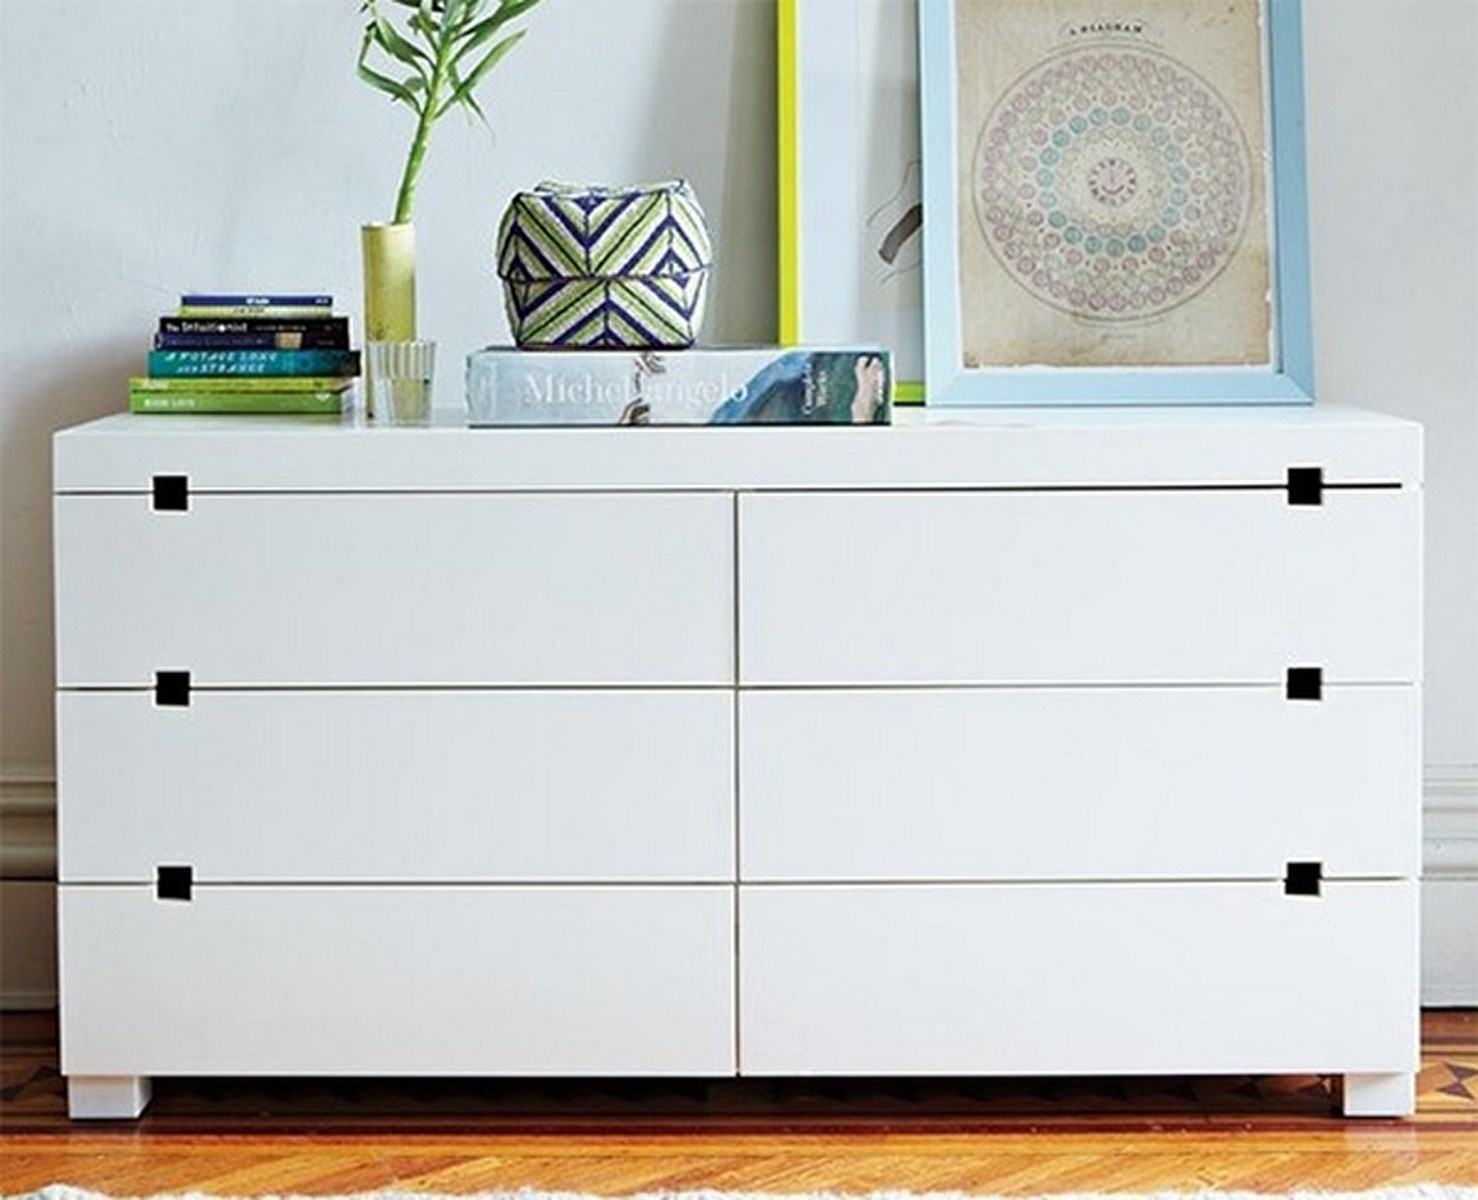 How to Decorate a Tall Dresser